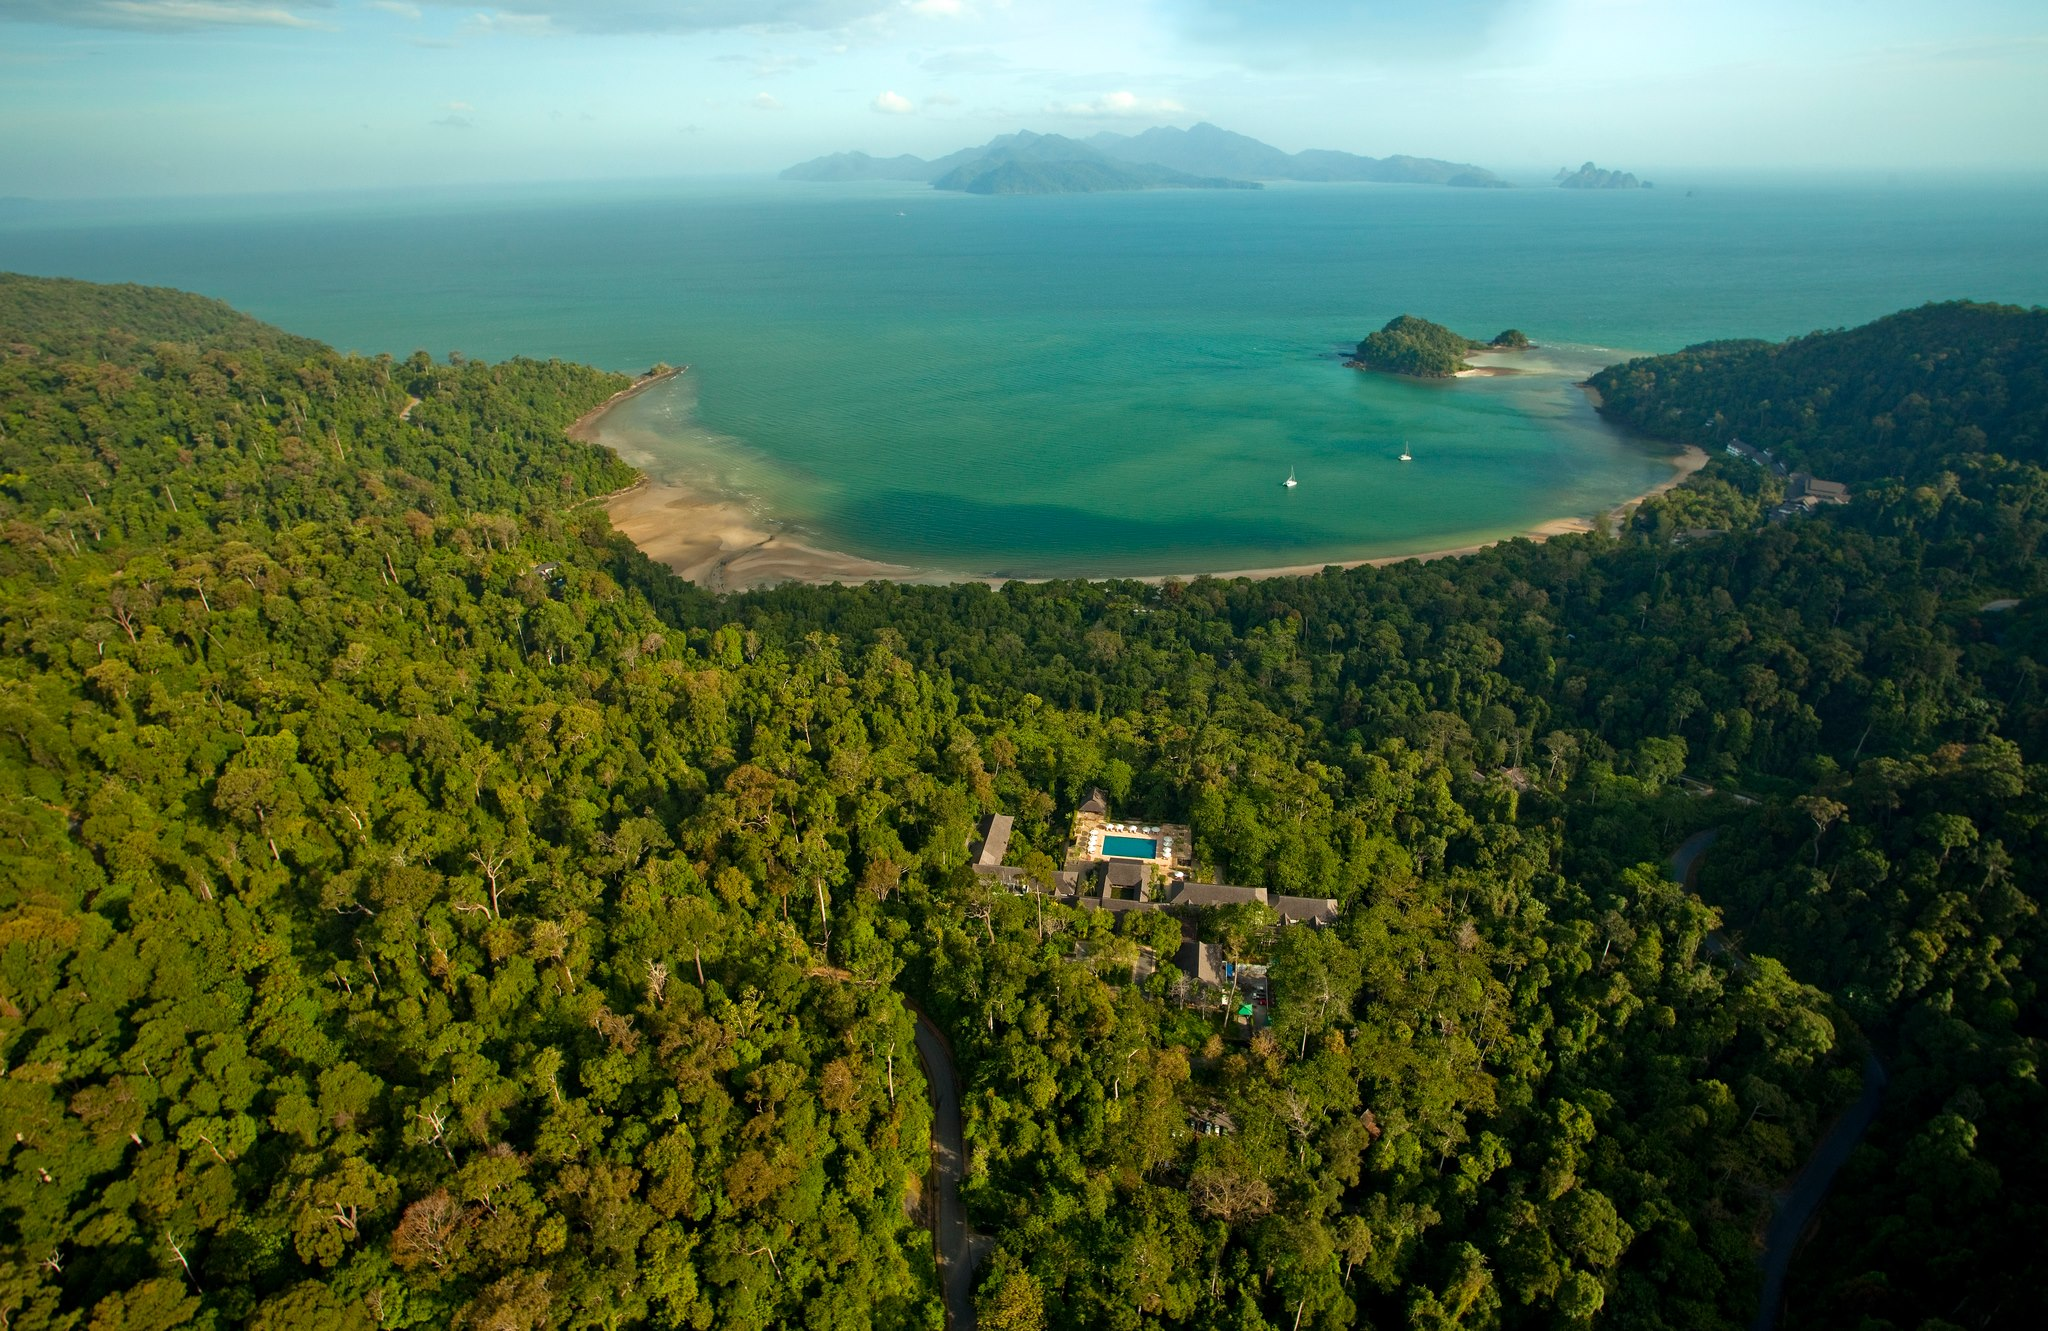 Nestled in the heart of an ancient rainforest, The Datai Langkawi is a captivating destination resort that blends smoothly with its natural surroundings. Situated on the mystical island of Langkawi, each room, suite and villa enjoys the embrace of the lush rainforest and offers stunning views from private verandas of the breathtaking Andaman Sea. Reconnect with nature, rekindle your spirit and reignite your soul in this serene natural haven.